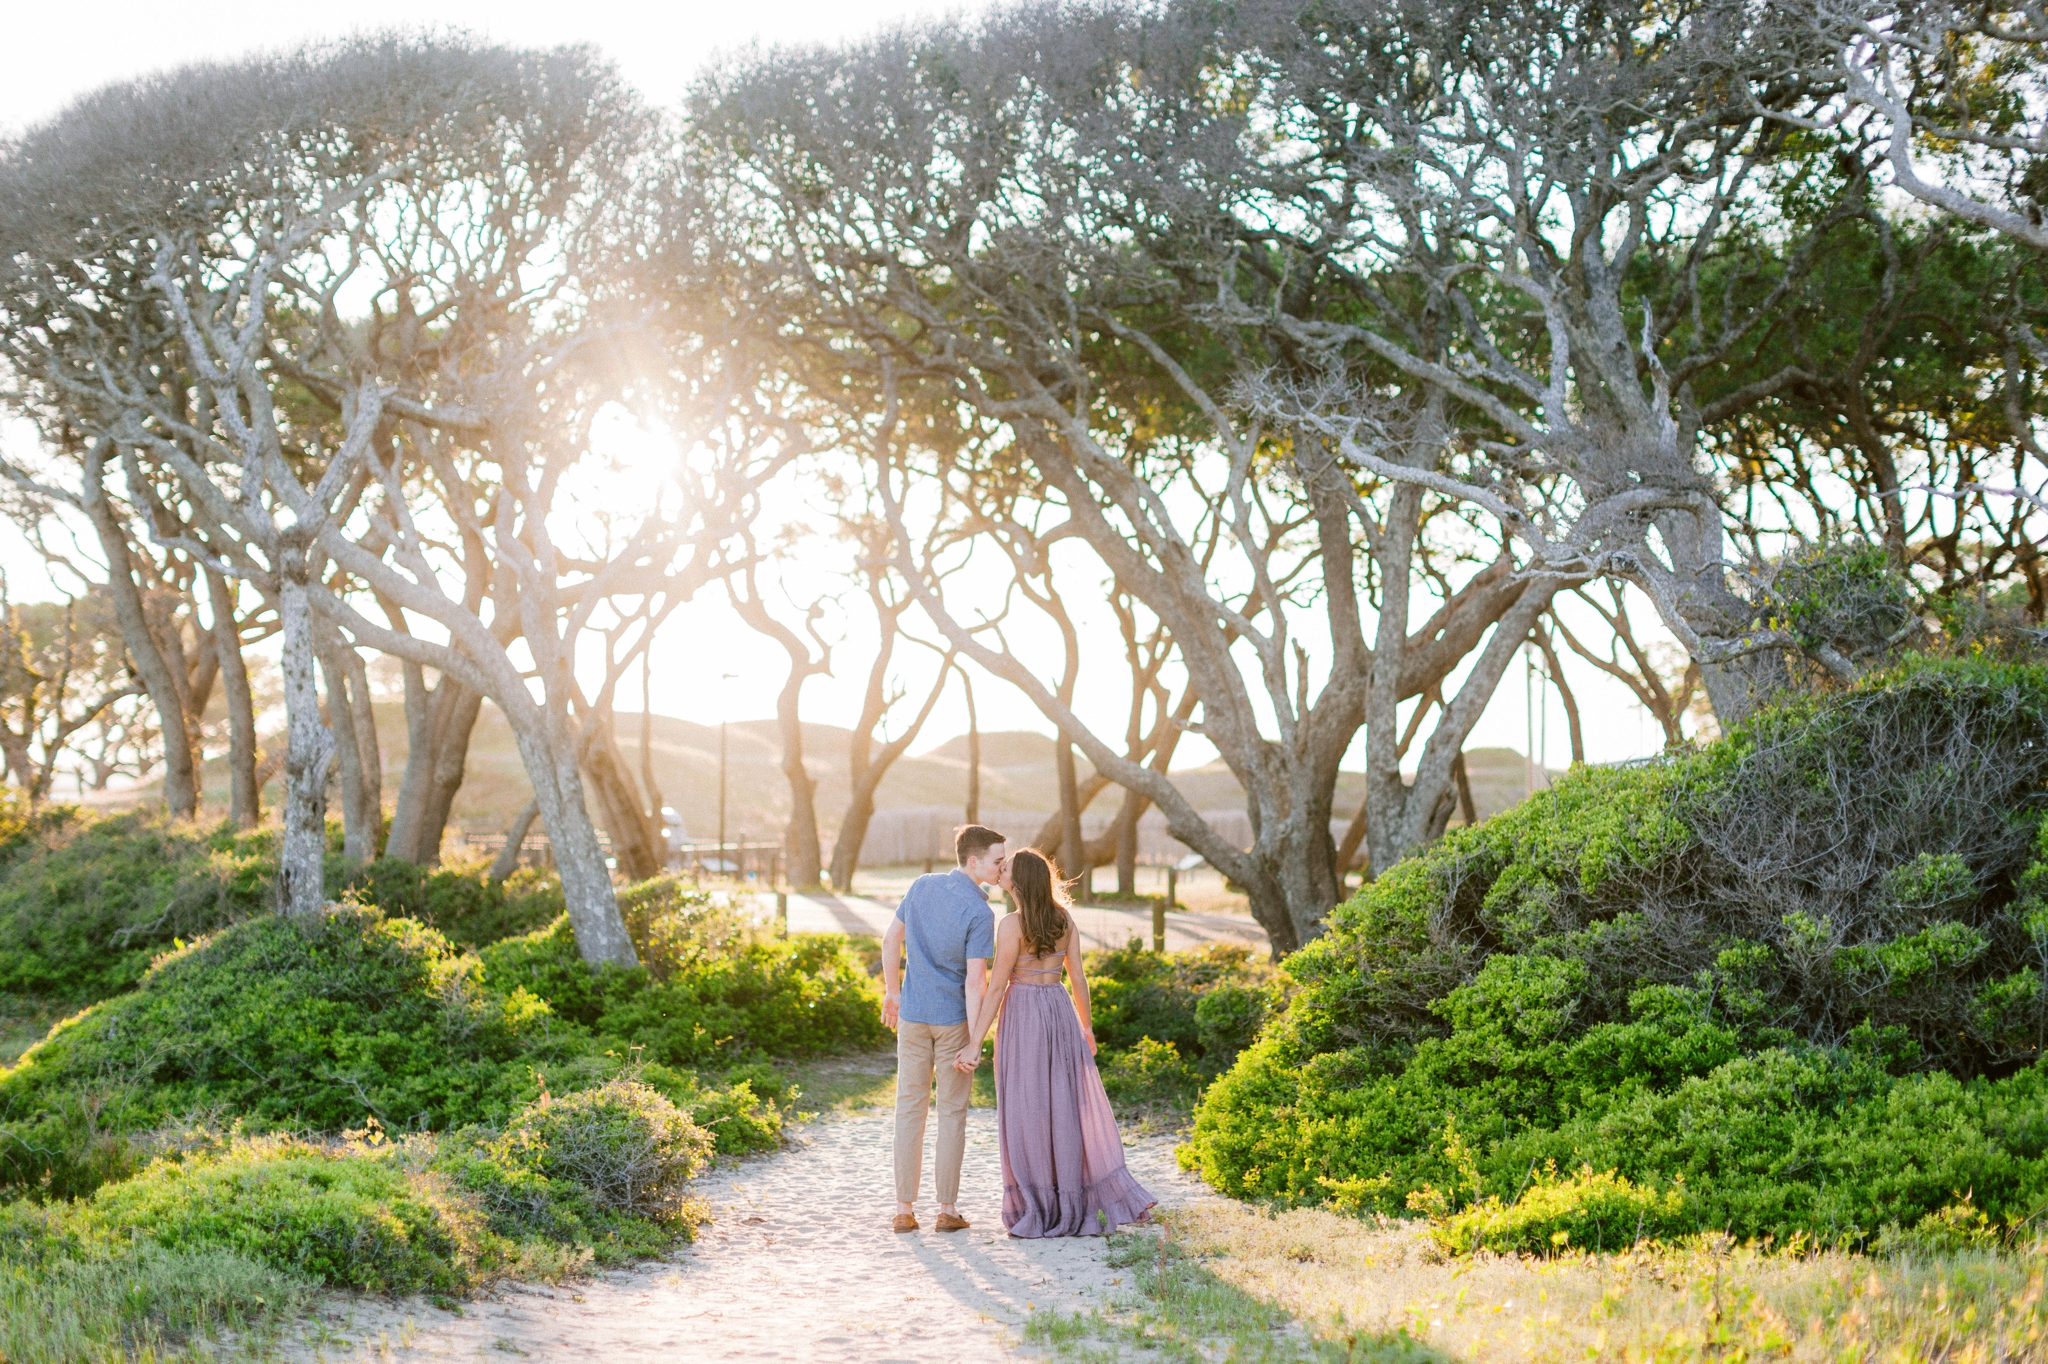 a couple walking towards the sun in front of live oak trees with the sunset behind them - Woman is in a flowy pastel maxi dress - unposed and candid outdoor golden light session - engagement photographer in honolulu, oahu, hawaii - johanna dye